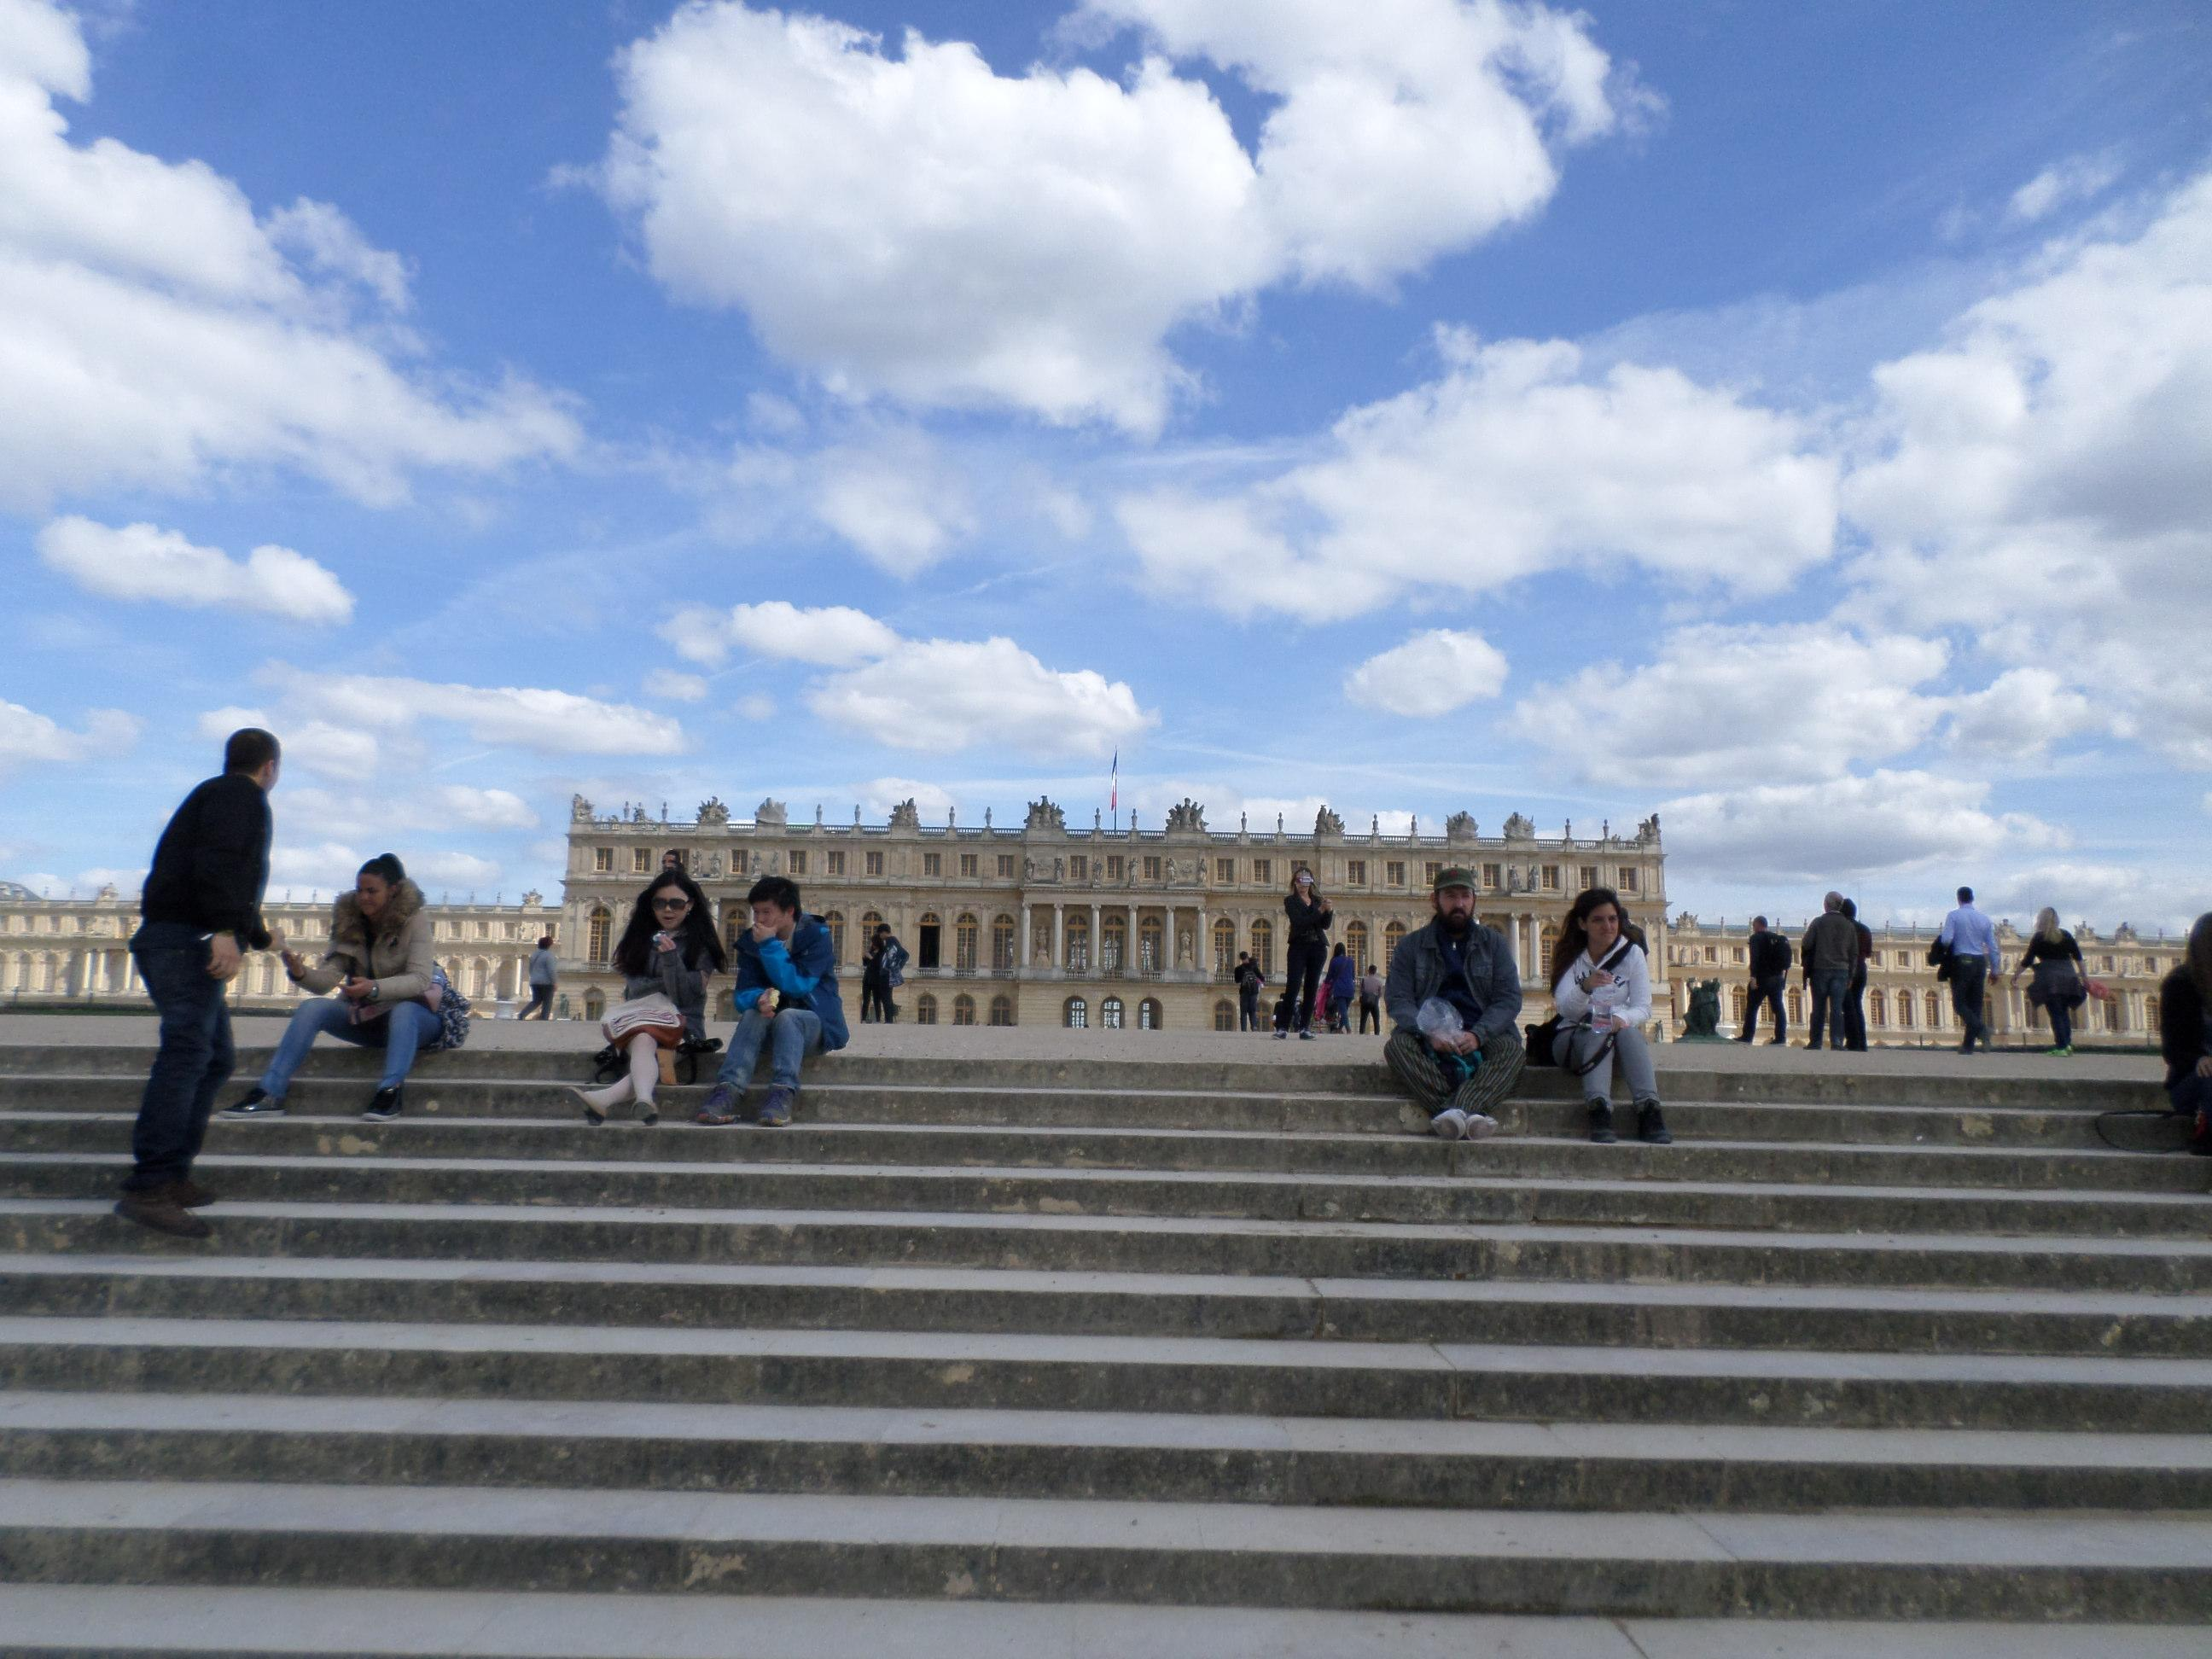 Palace of Versailles. From the steps to the gardens.